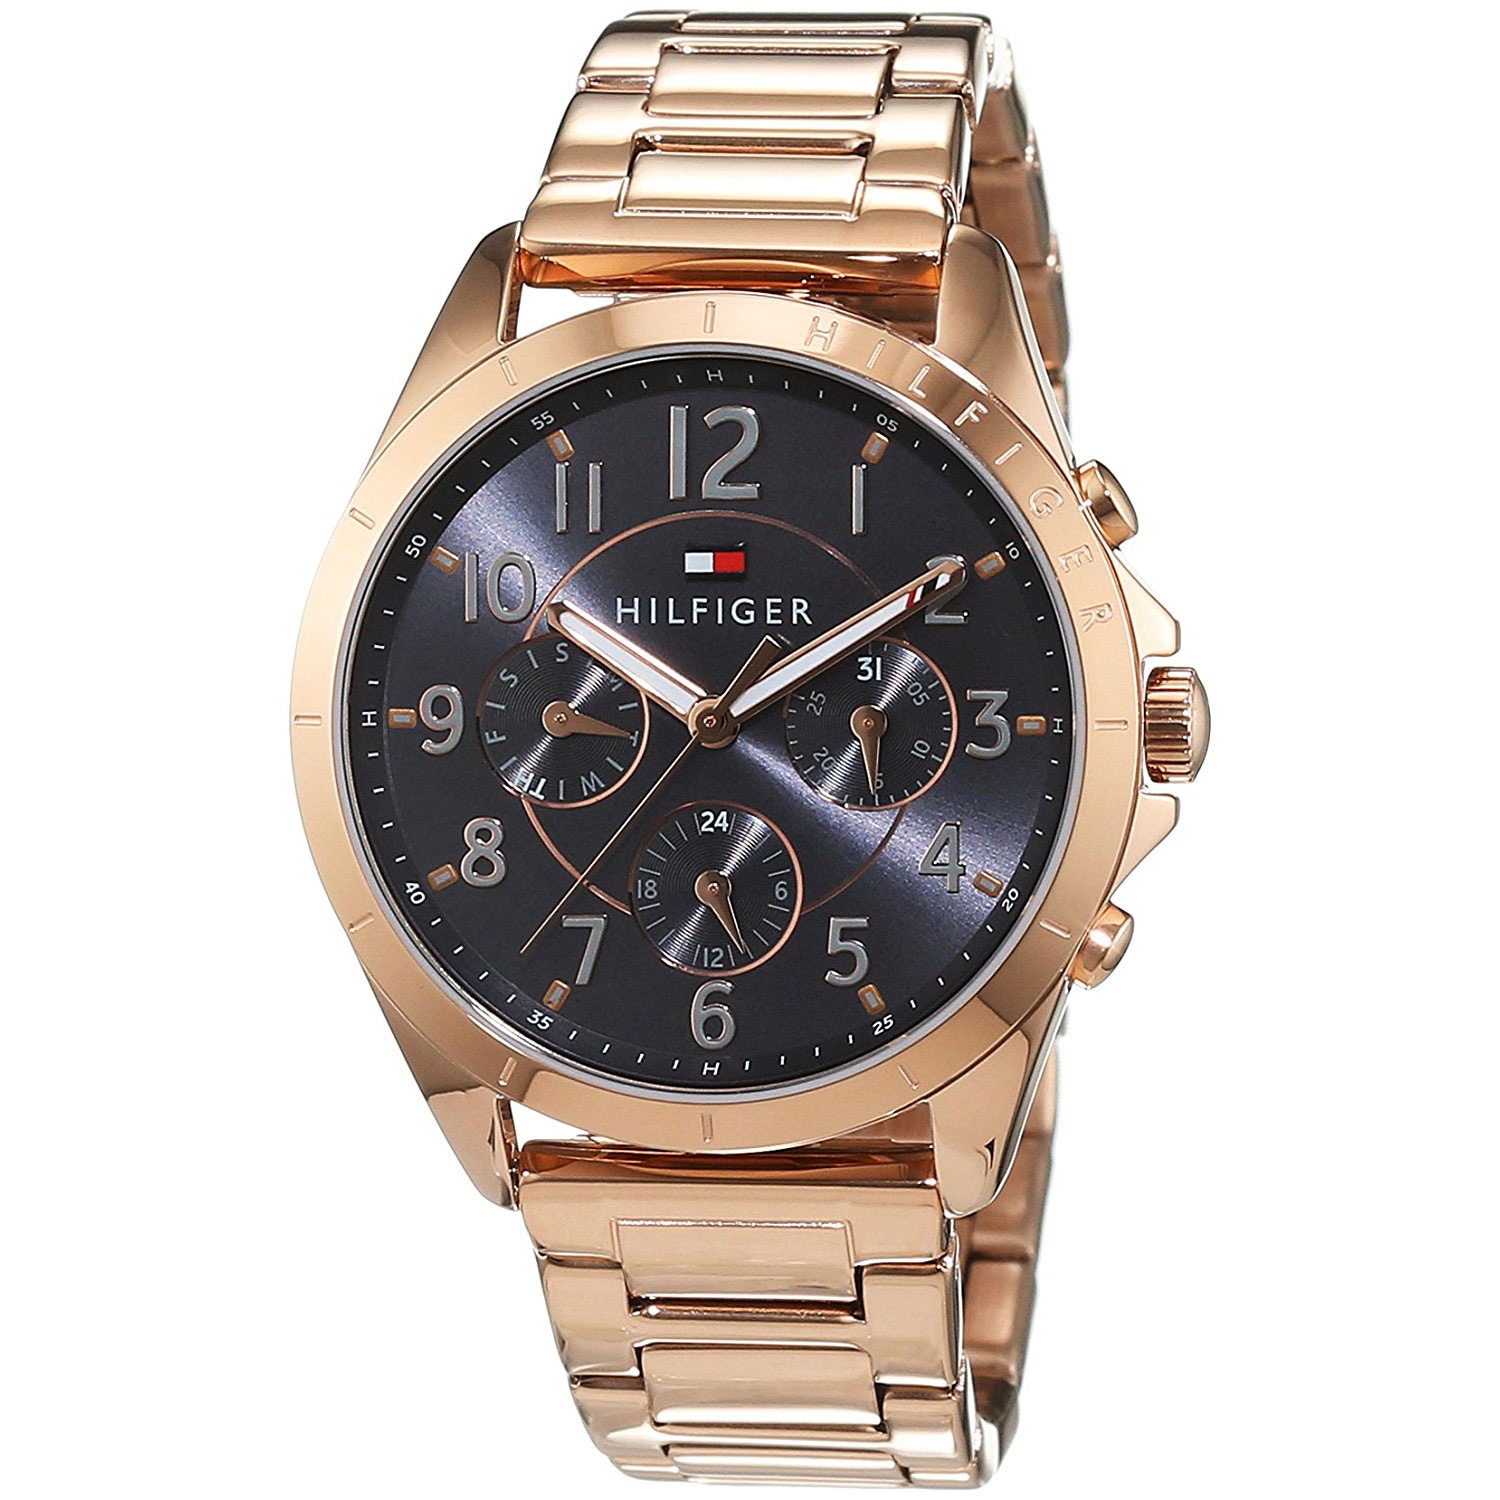 f30fdc86 Tommy Hilfiger Watch with rose gold stainless steel 1781606. Tap to expand